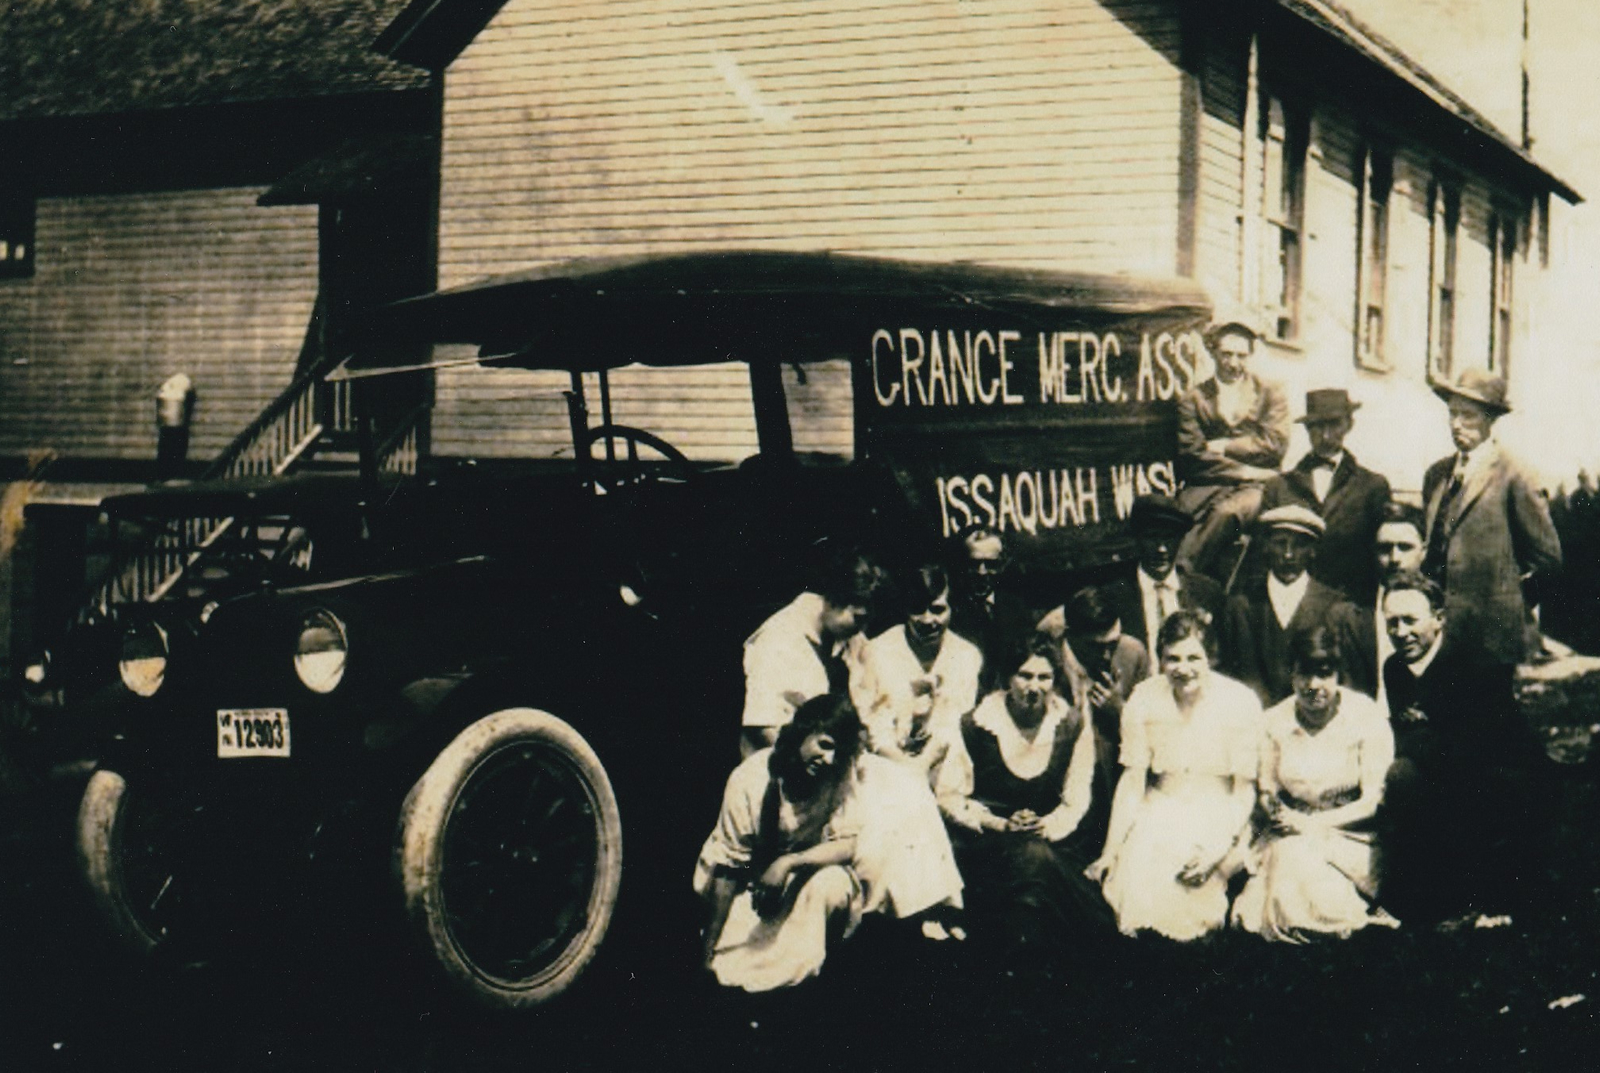 The Grange Historic Photo in Issaquah WA